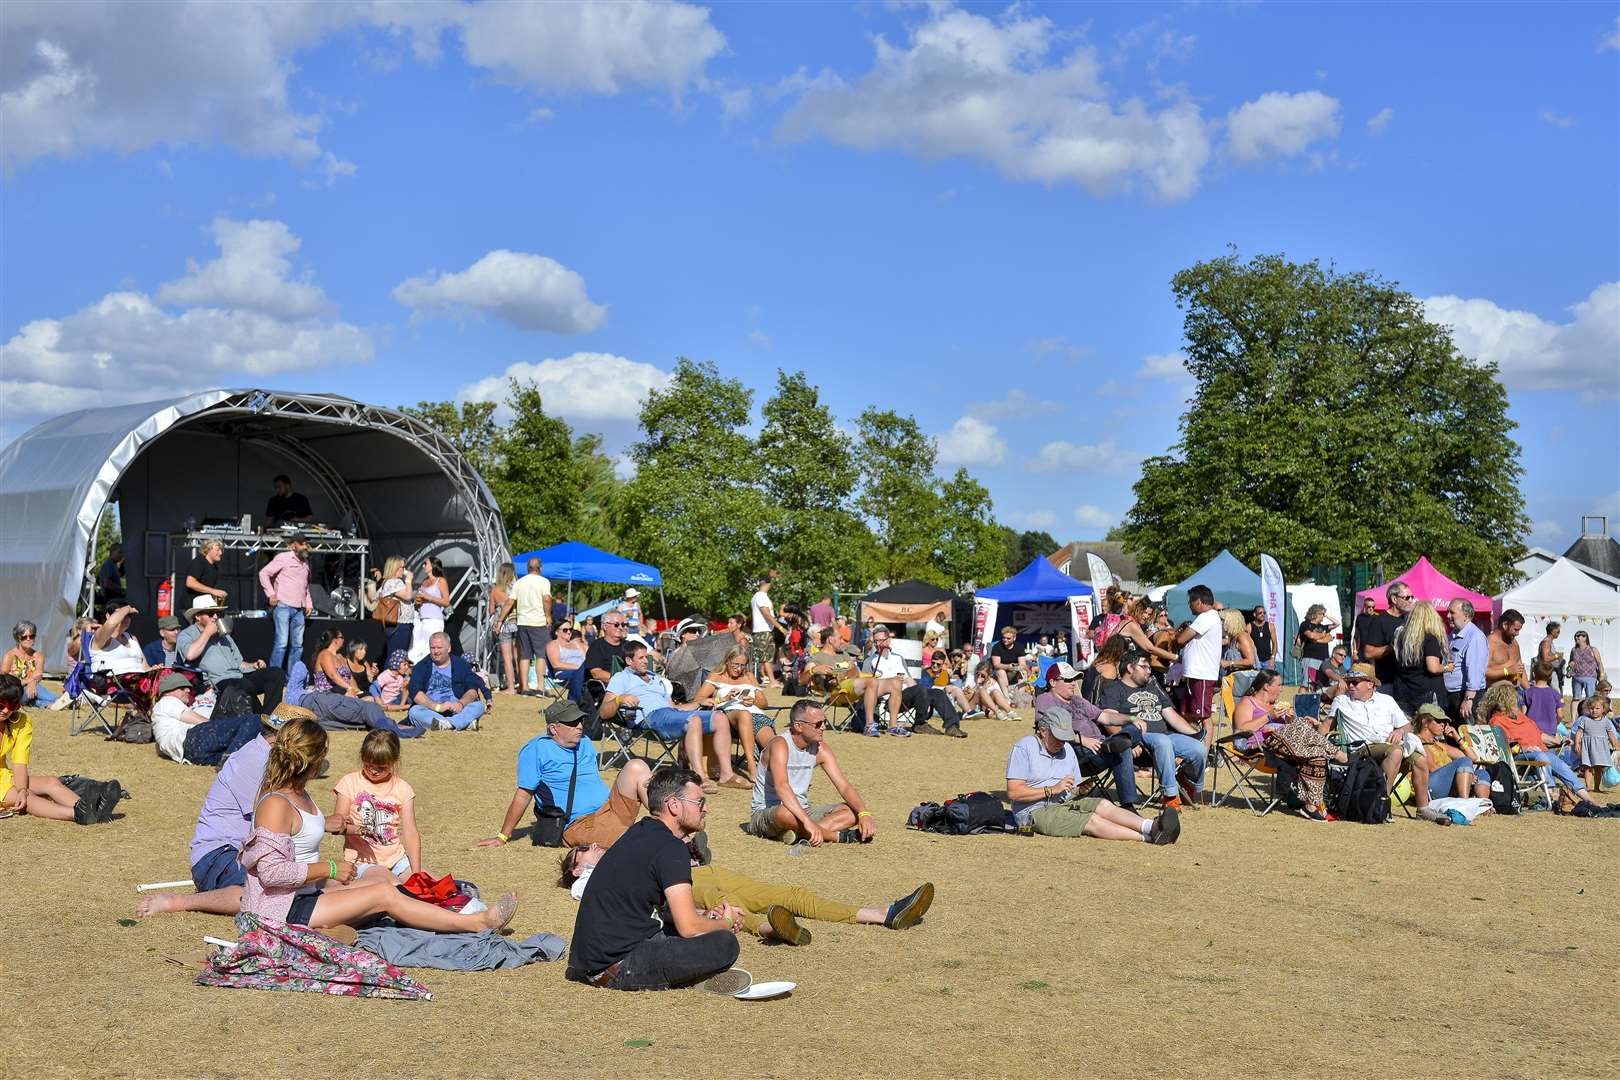 Next year's festival will contain sound via the use of a main marquee.